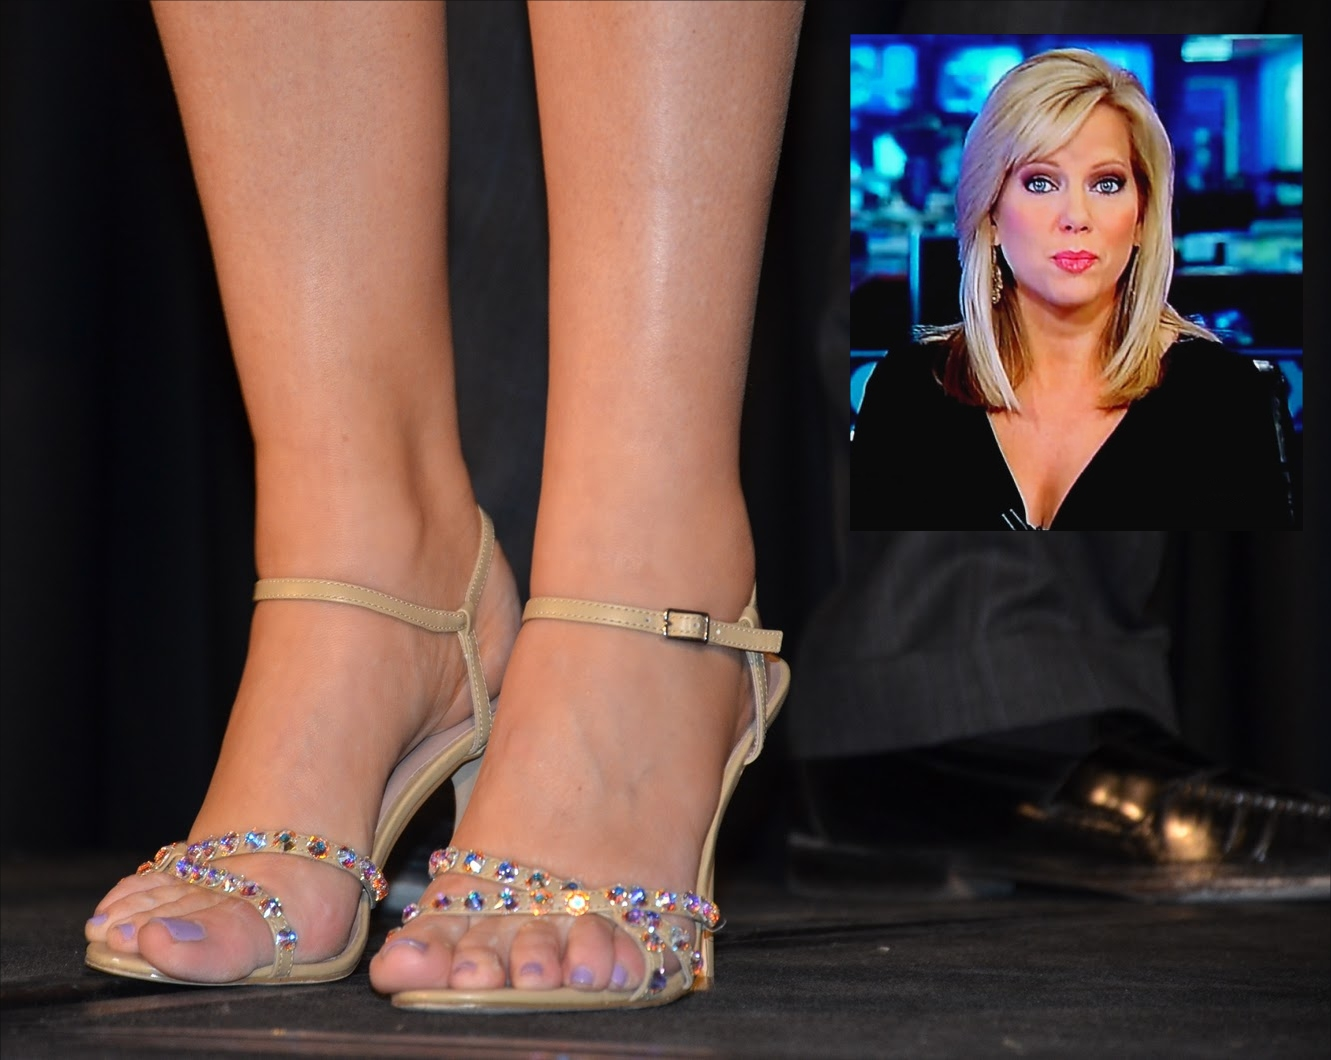 Shannon-Bream-Feet-618299.jpg